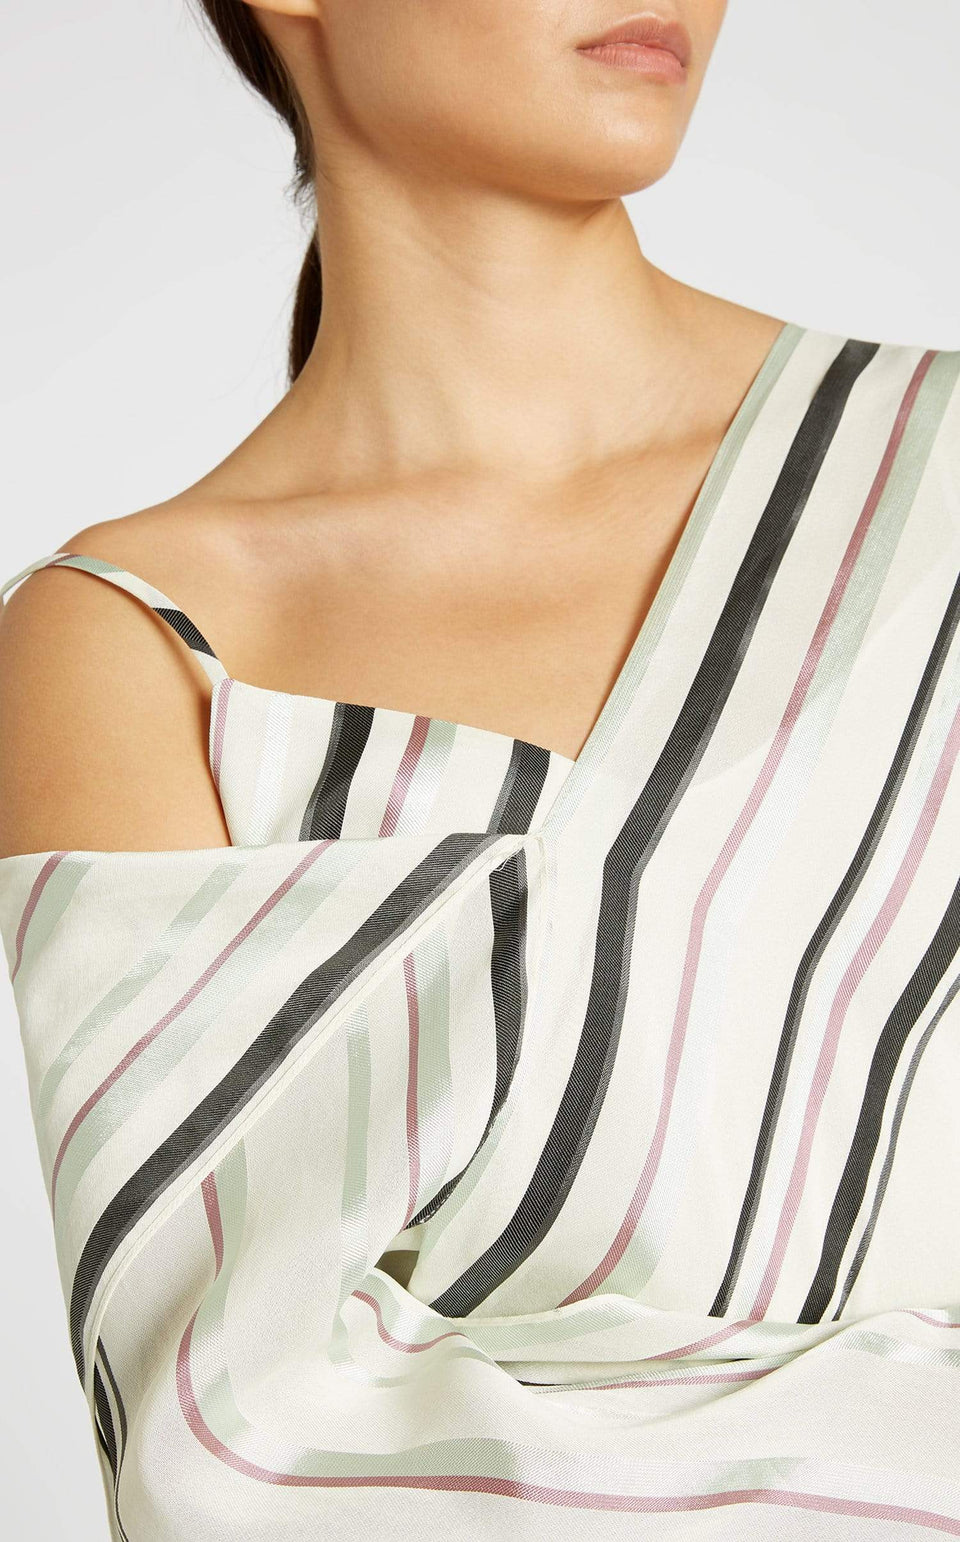 Barrio Top In Pastel Multi from Roland Mouret